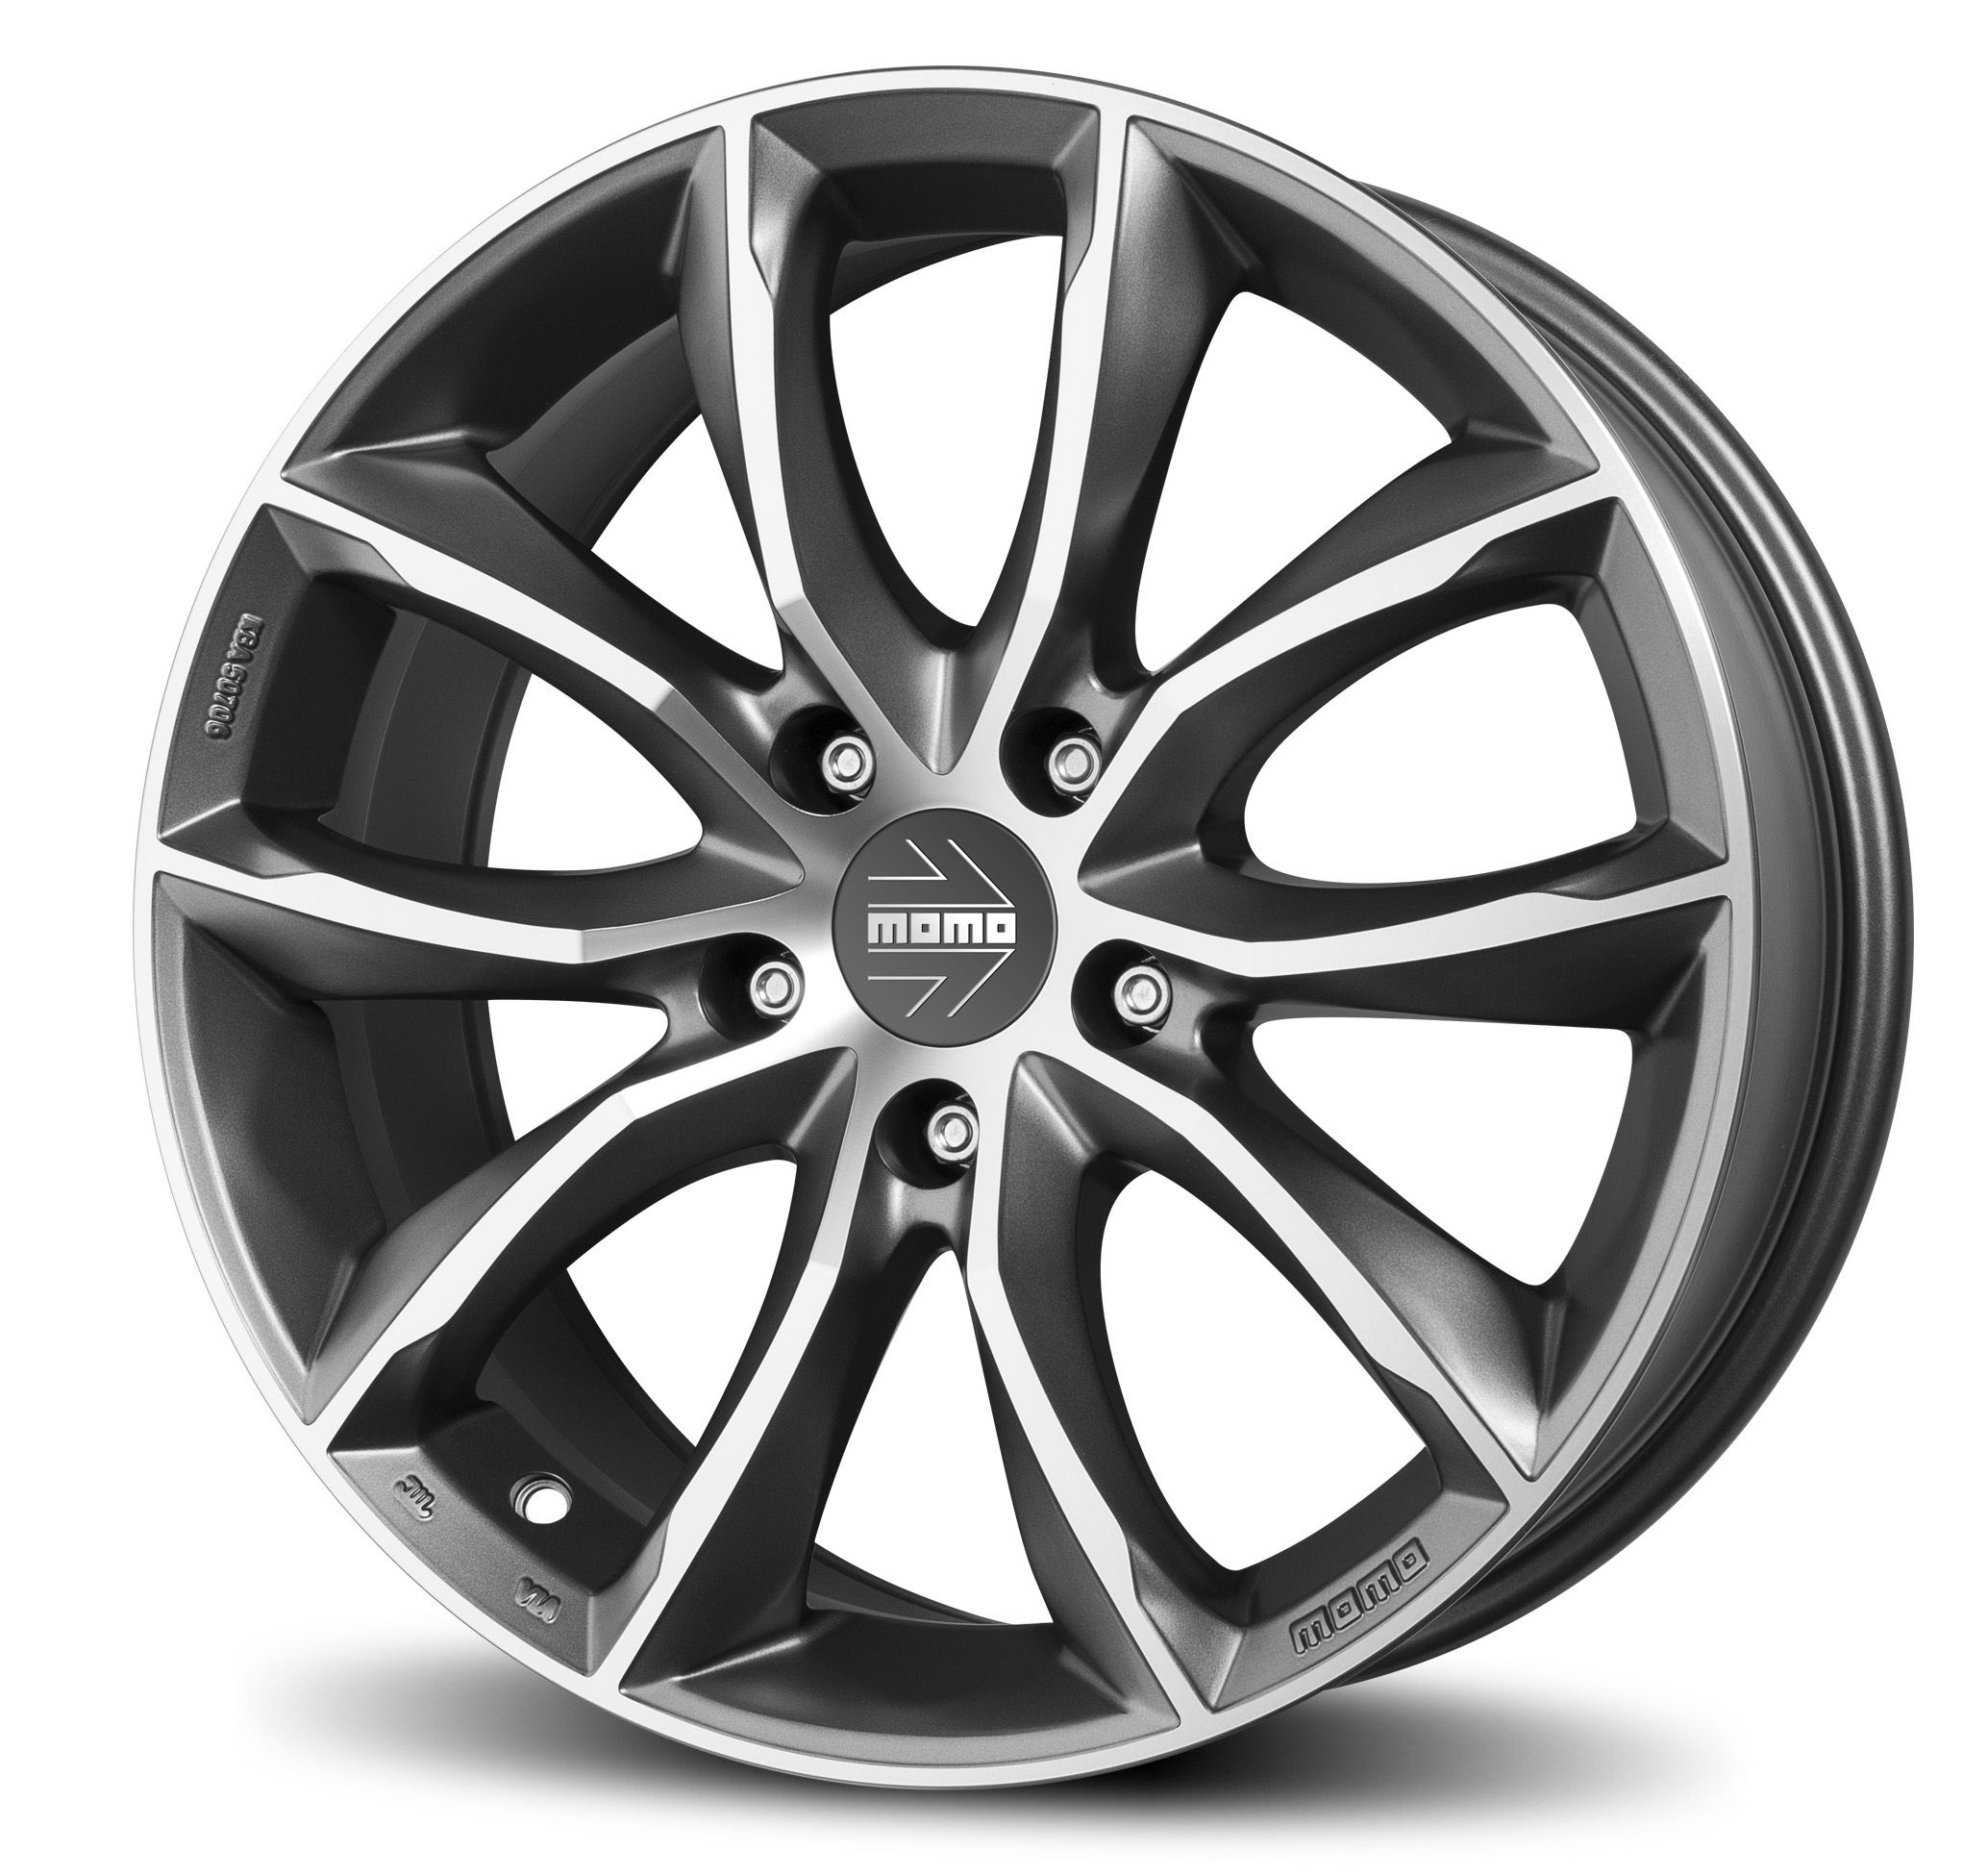 Disk Momo Scream Jet Evo 8,0 X 18 Et40 5X114,3 72,3 Matt Anthracite D. Cut Via